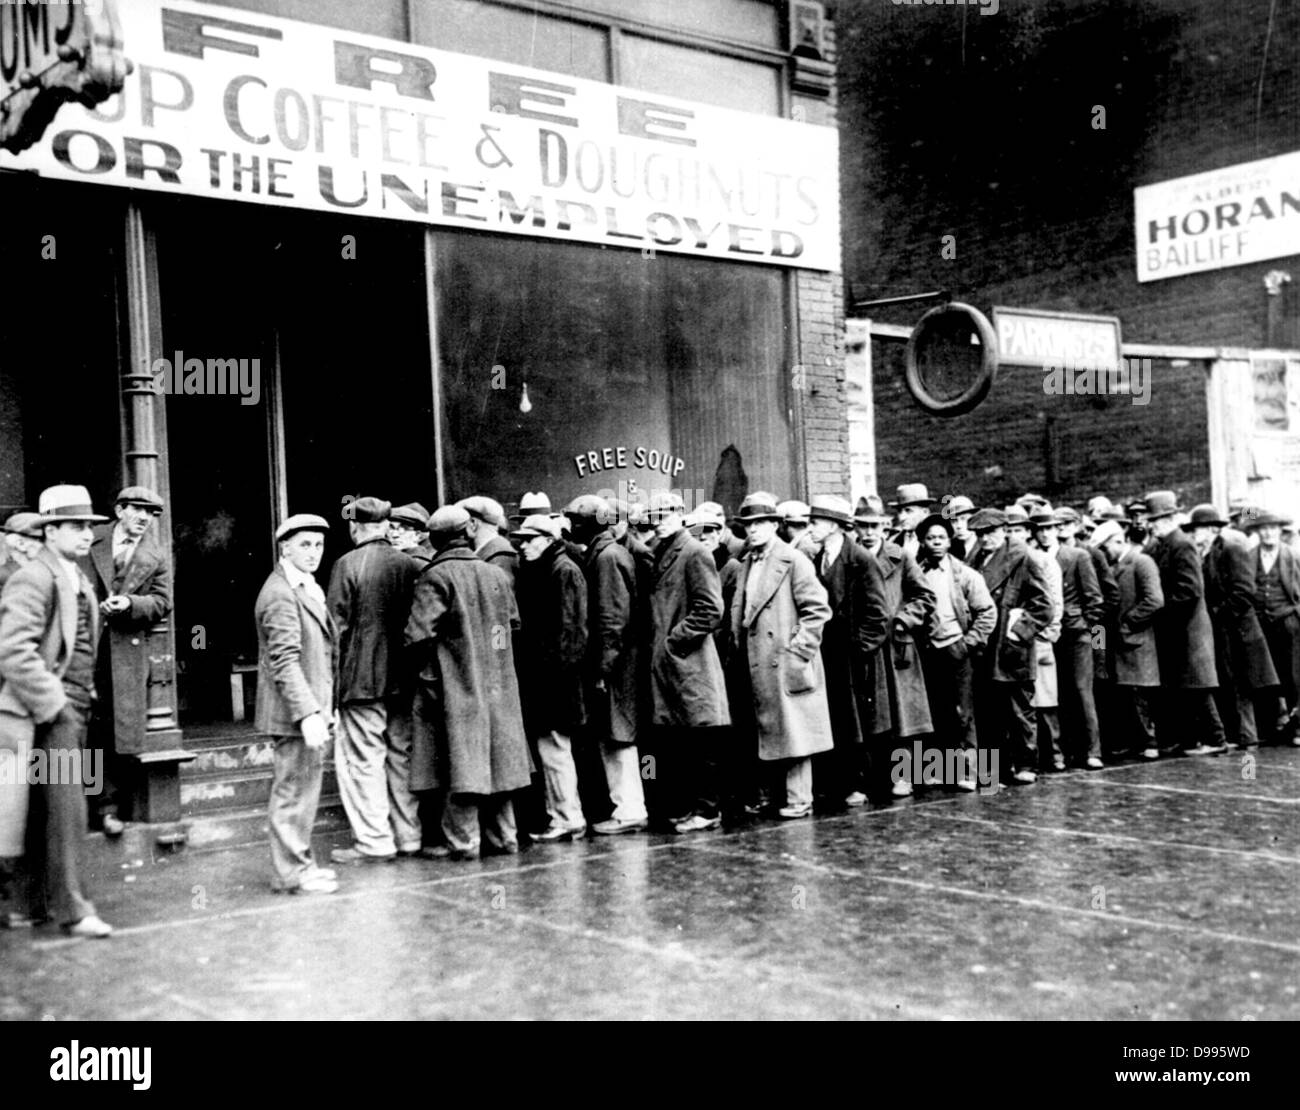 Soup Kitchen for unemployed in New York circa 1930 - Stock Image